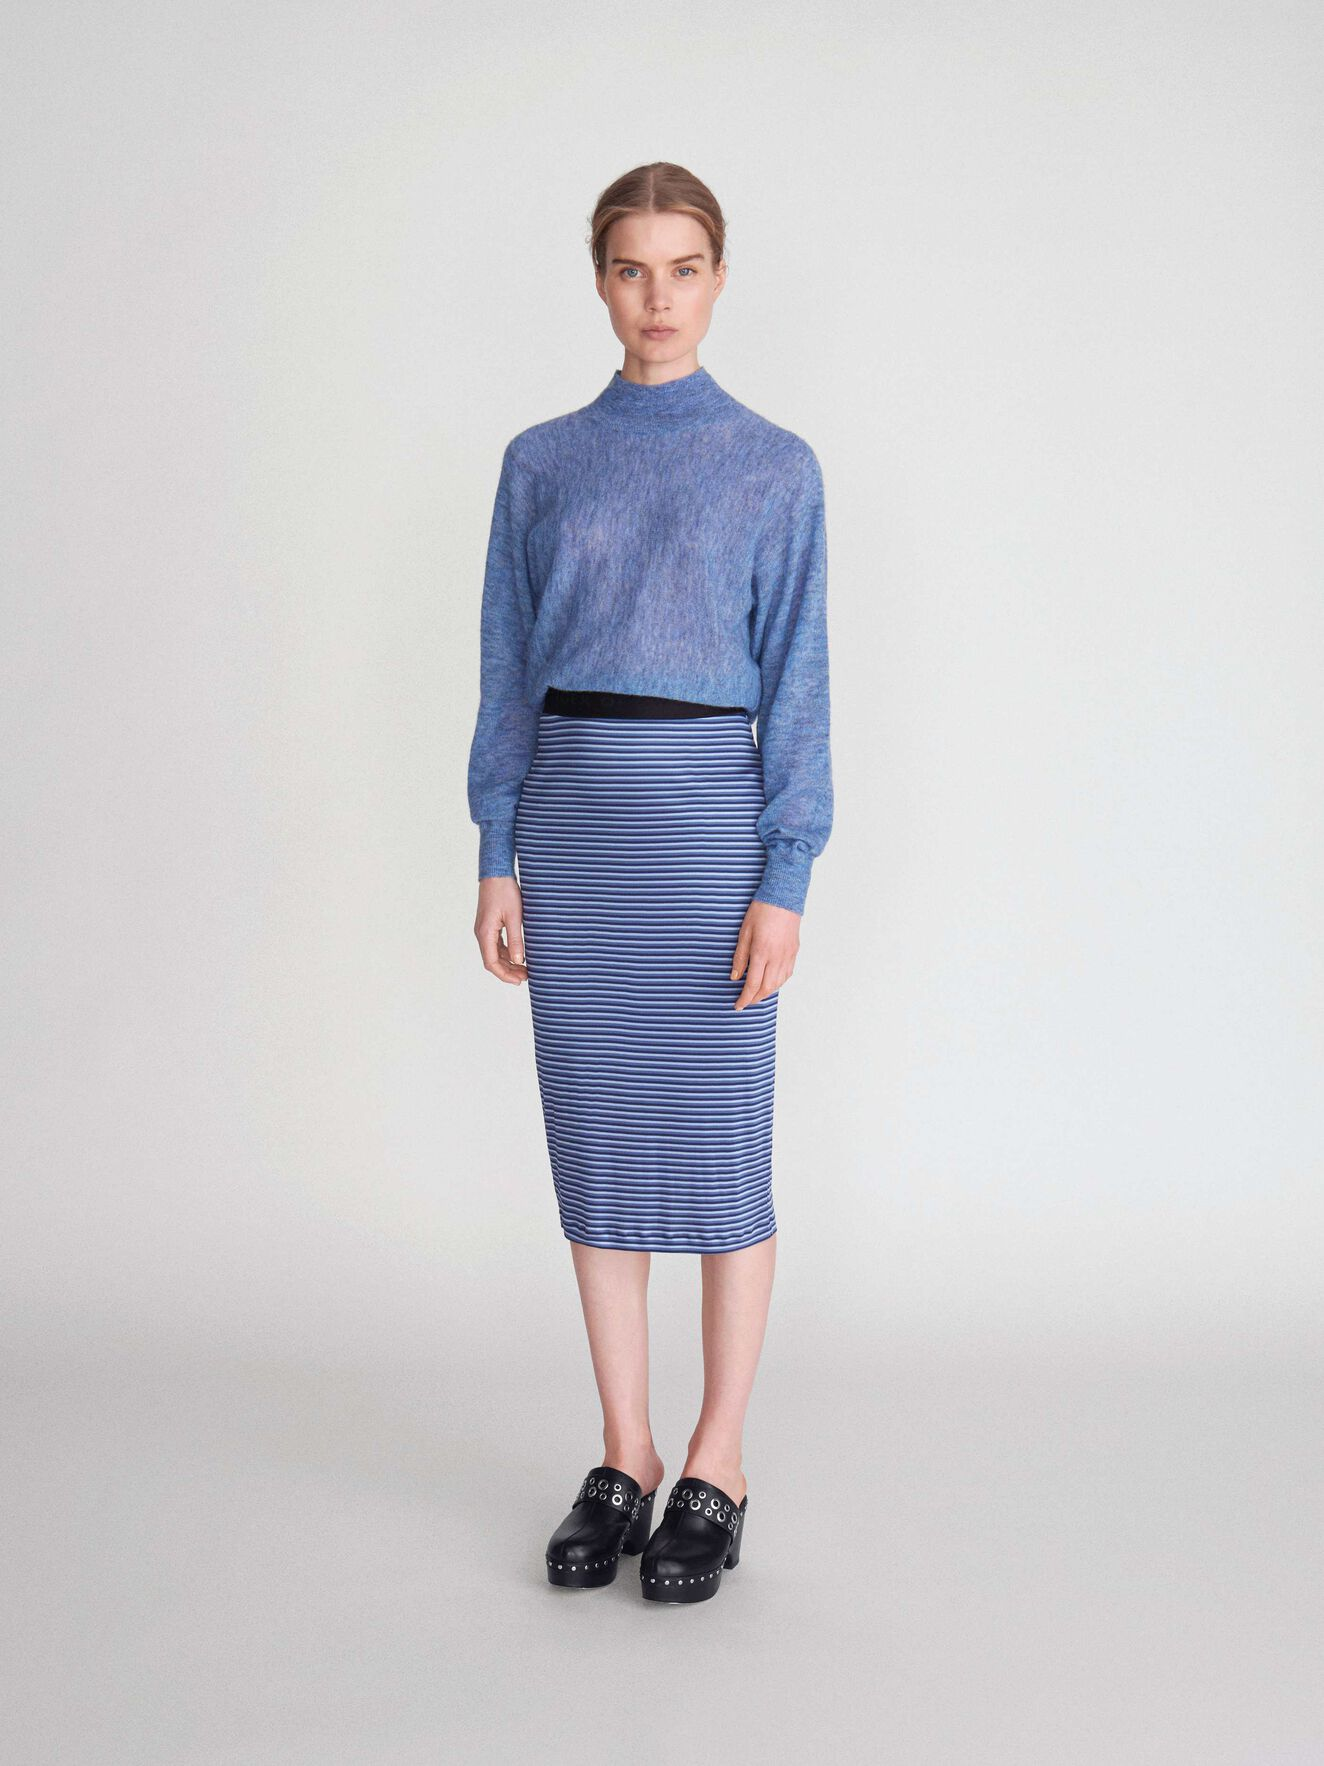 Dyana Pullover in Soft blue from Tiger of Sweden